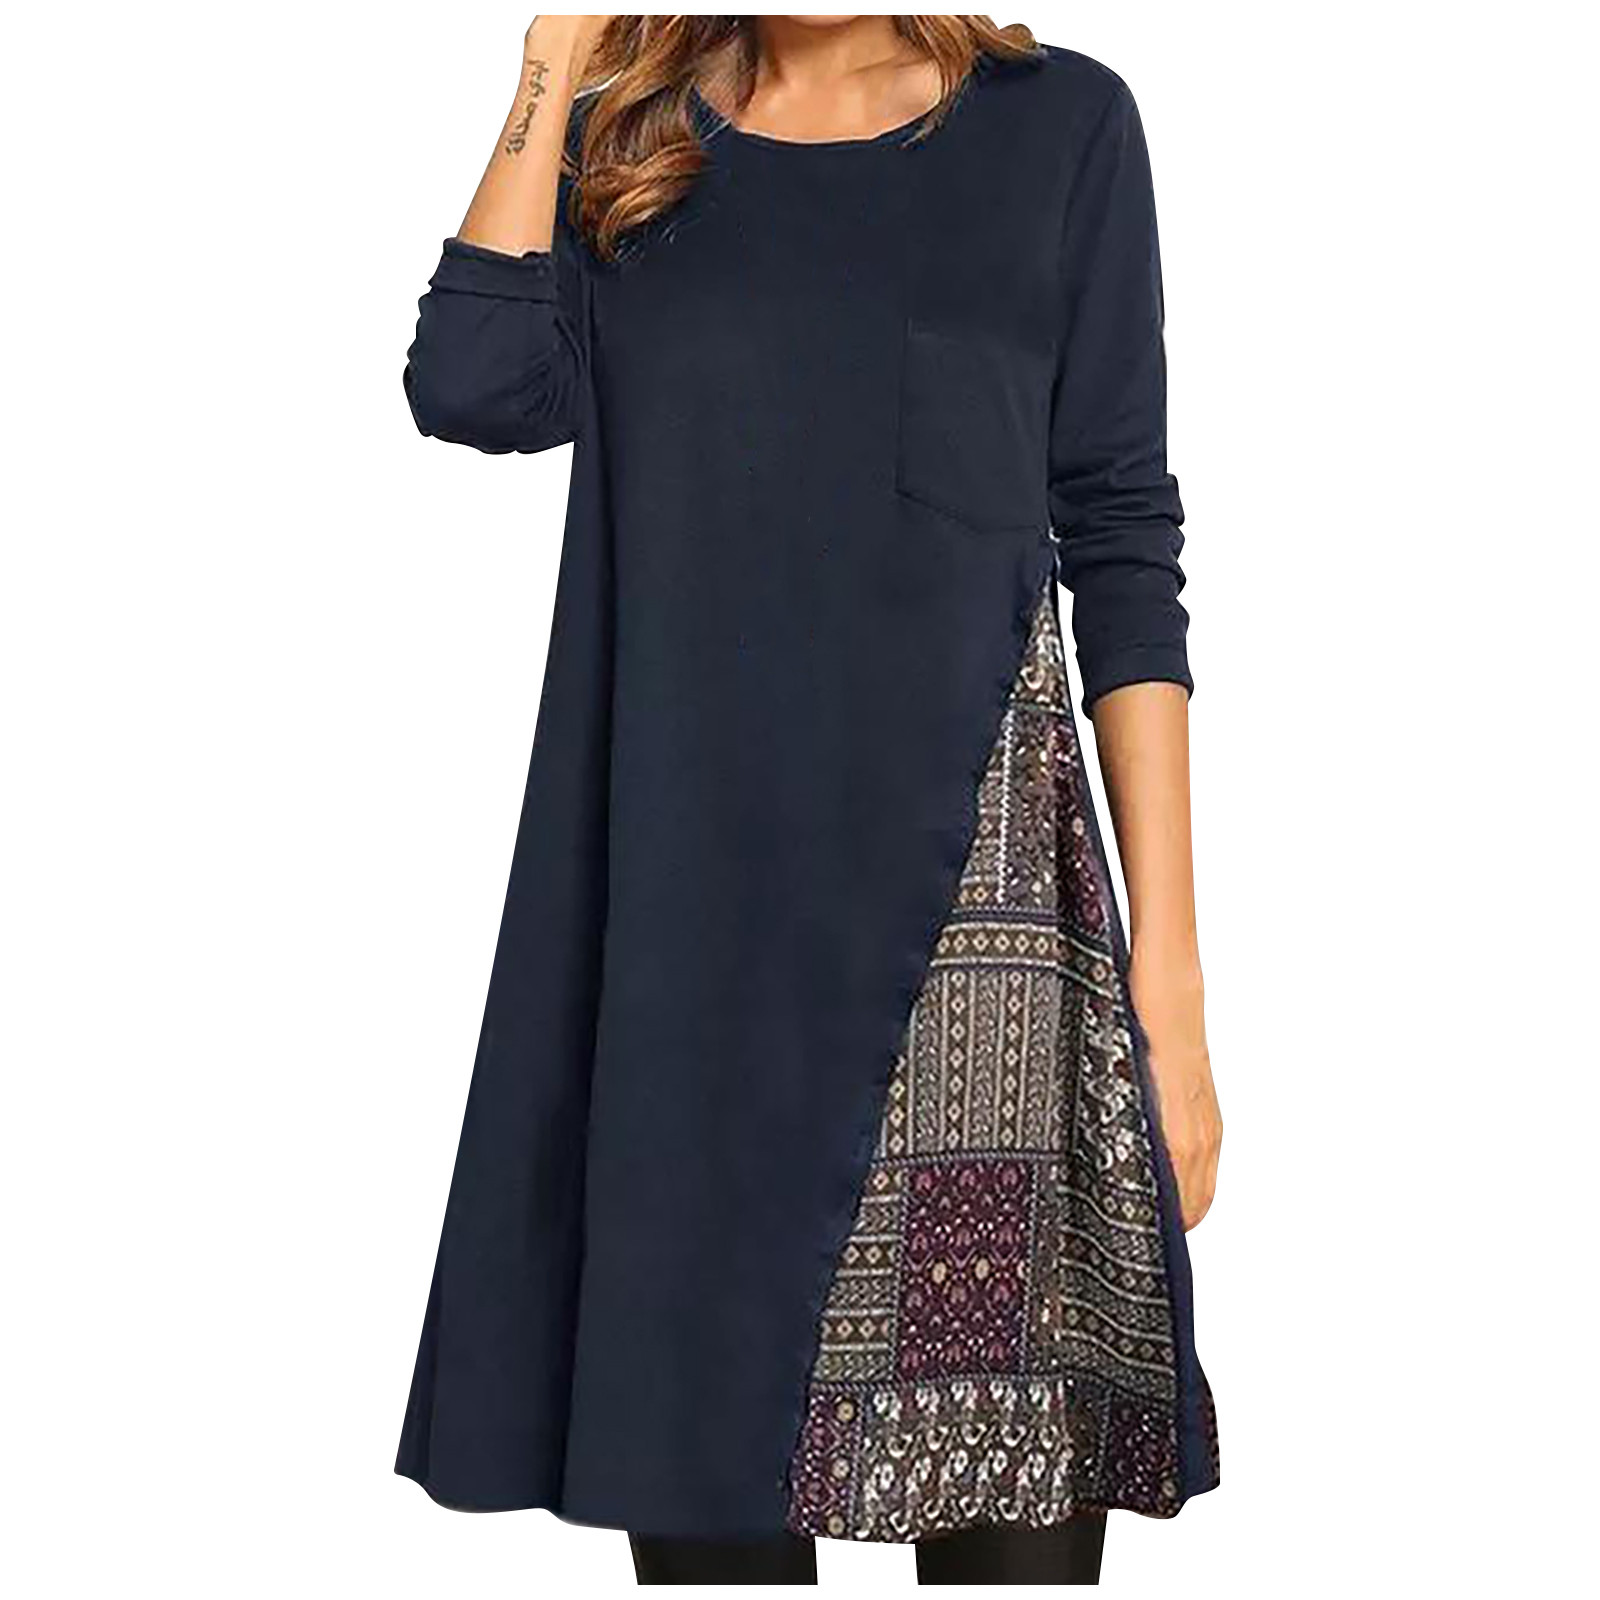 vestido de mujer Women Boho Print Color Block Shirt Round Neckline Shift Long Sleeve Pocket Dress femme robe платье 2021